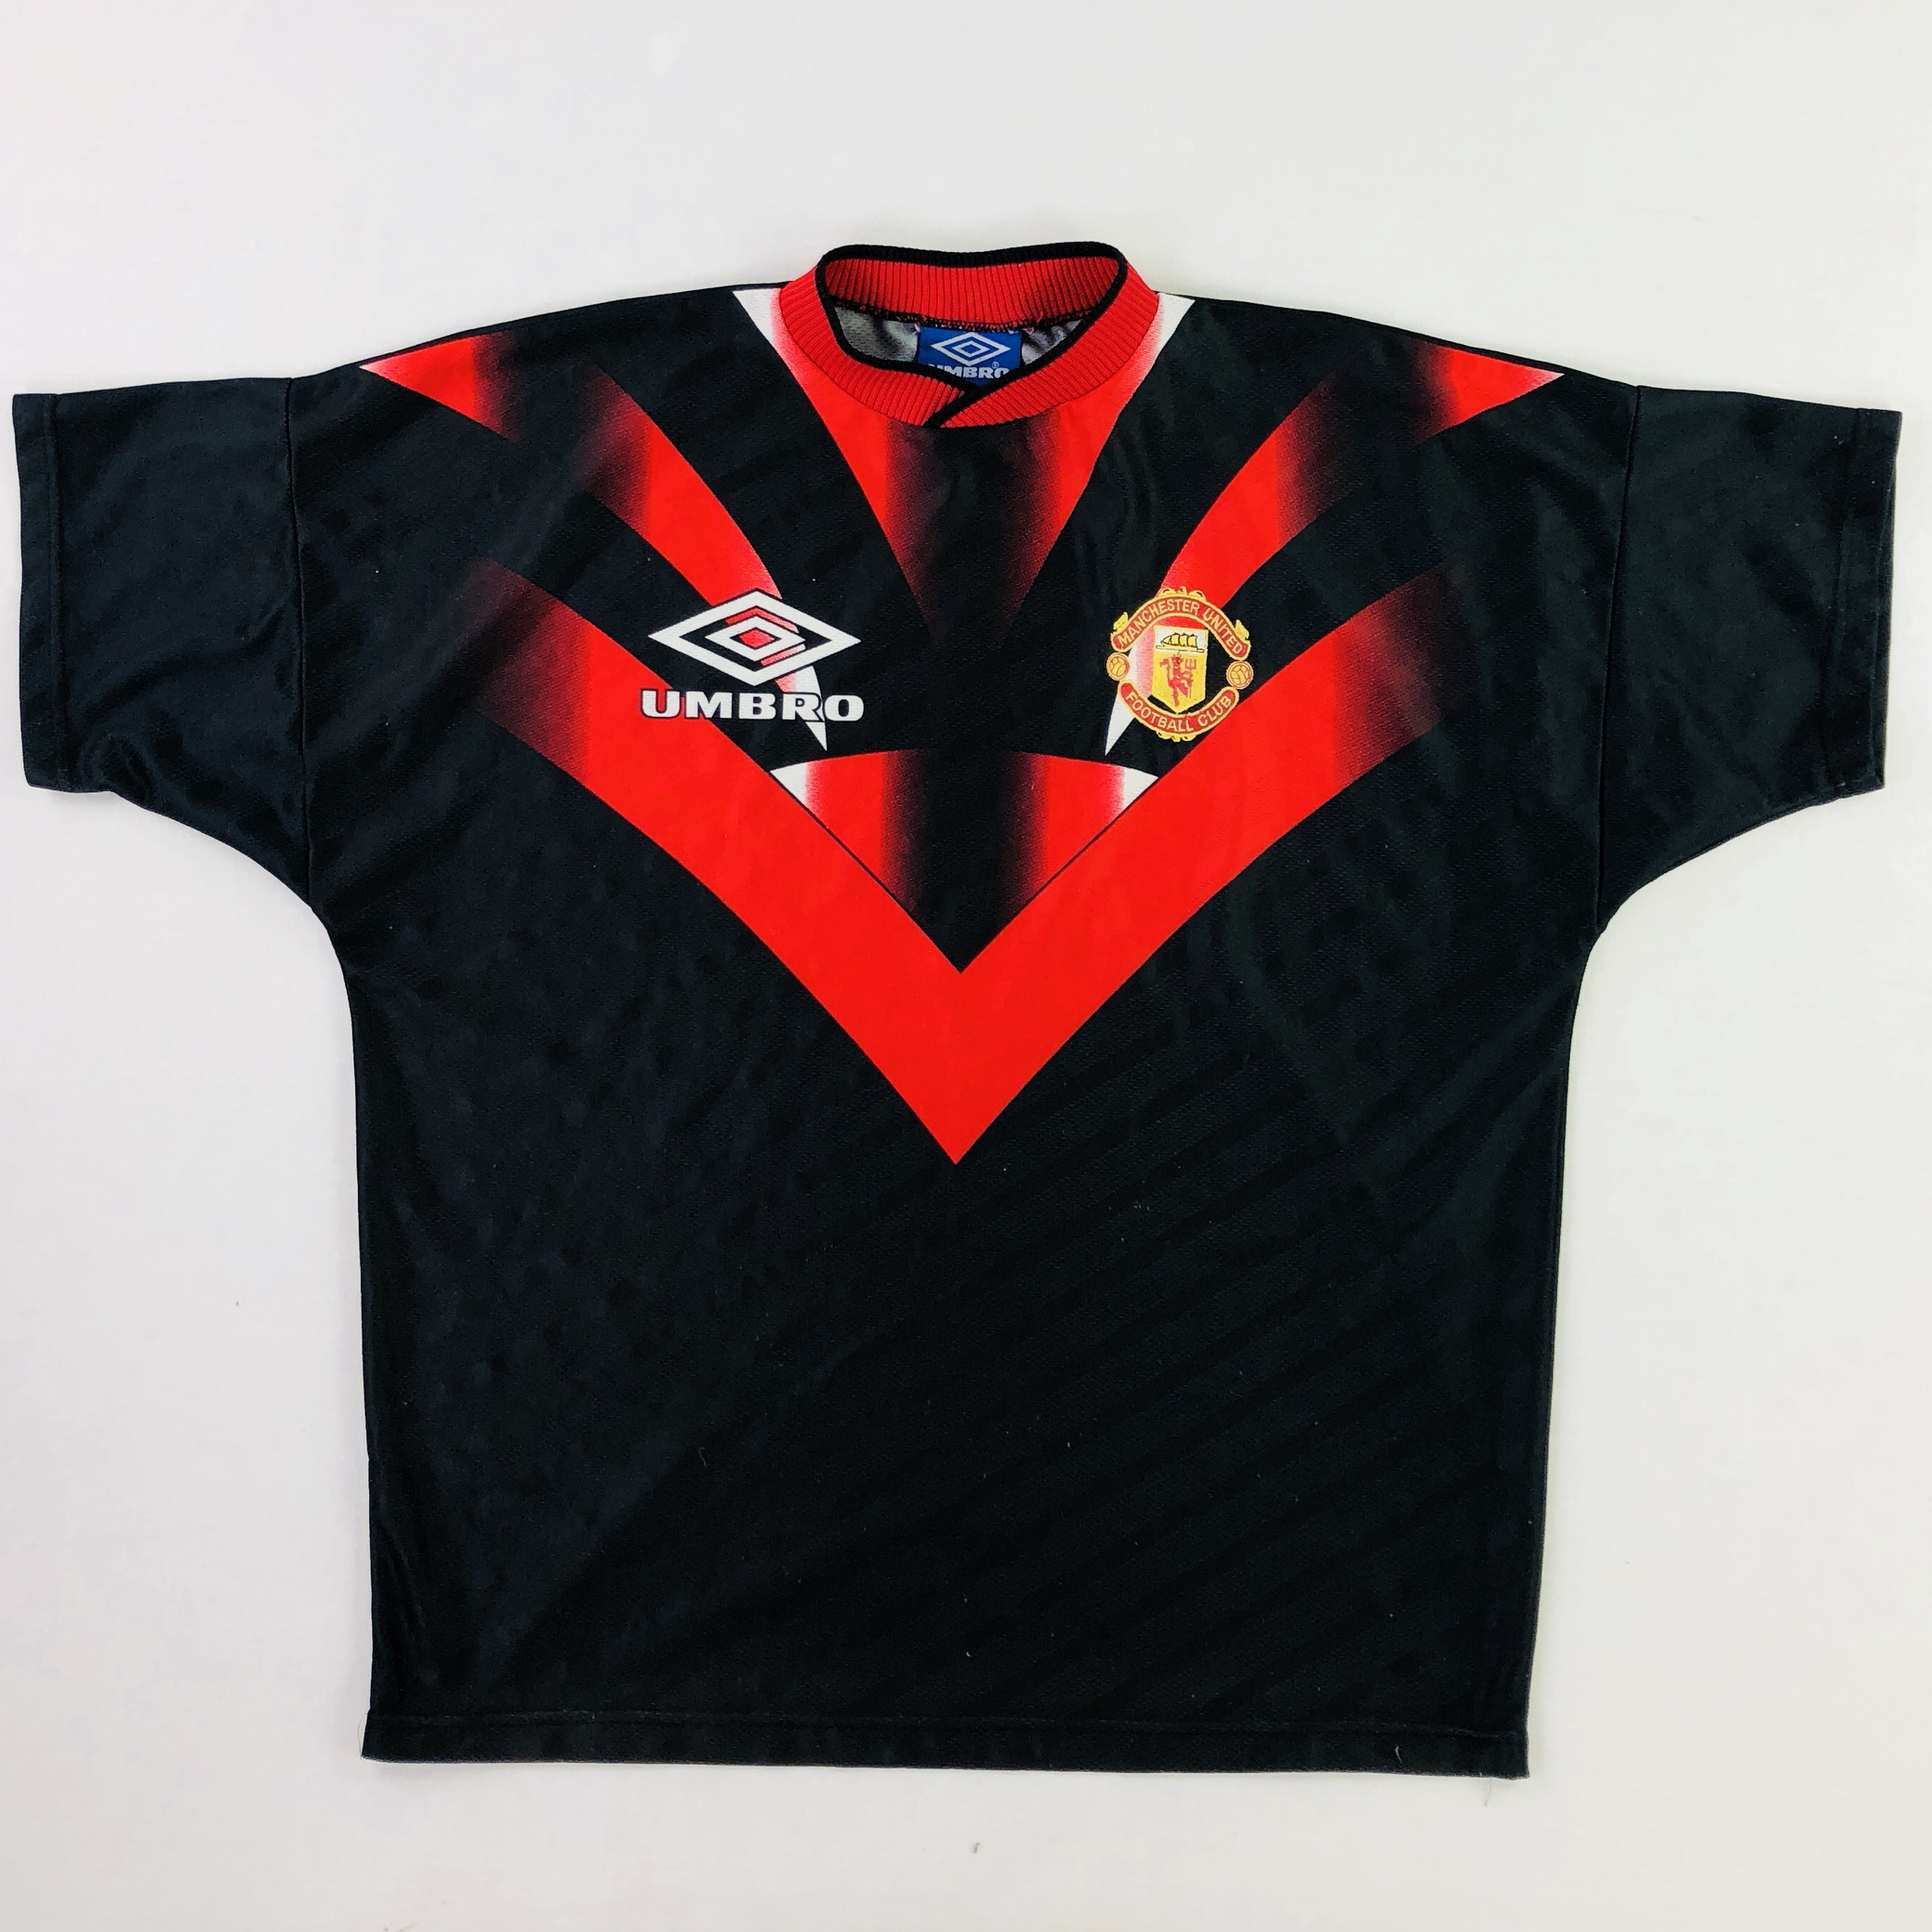 90 S Umbro Man United Training Kit In Red And Black Depop